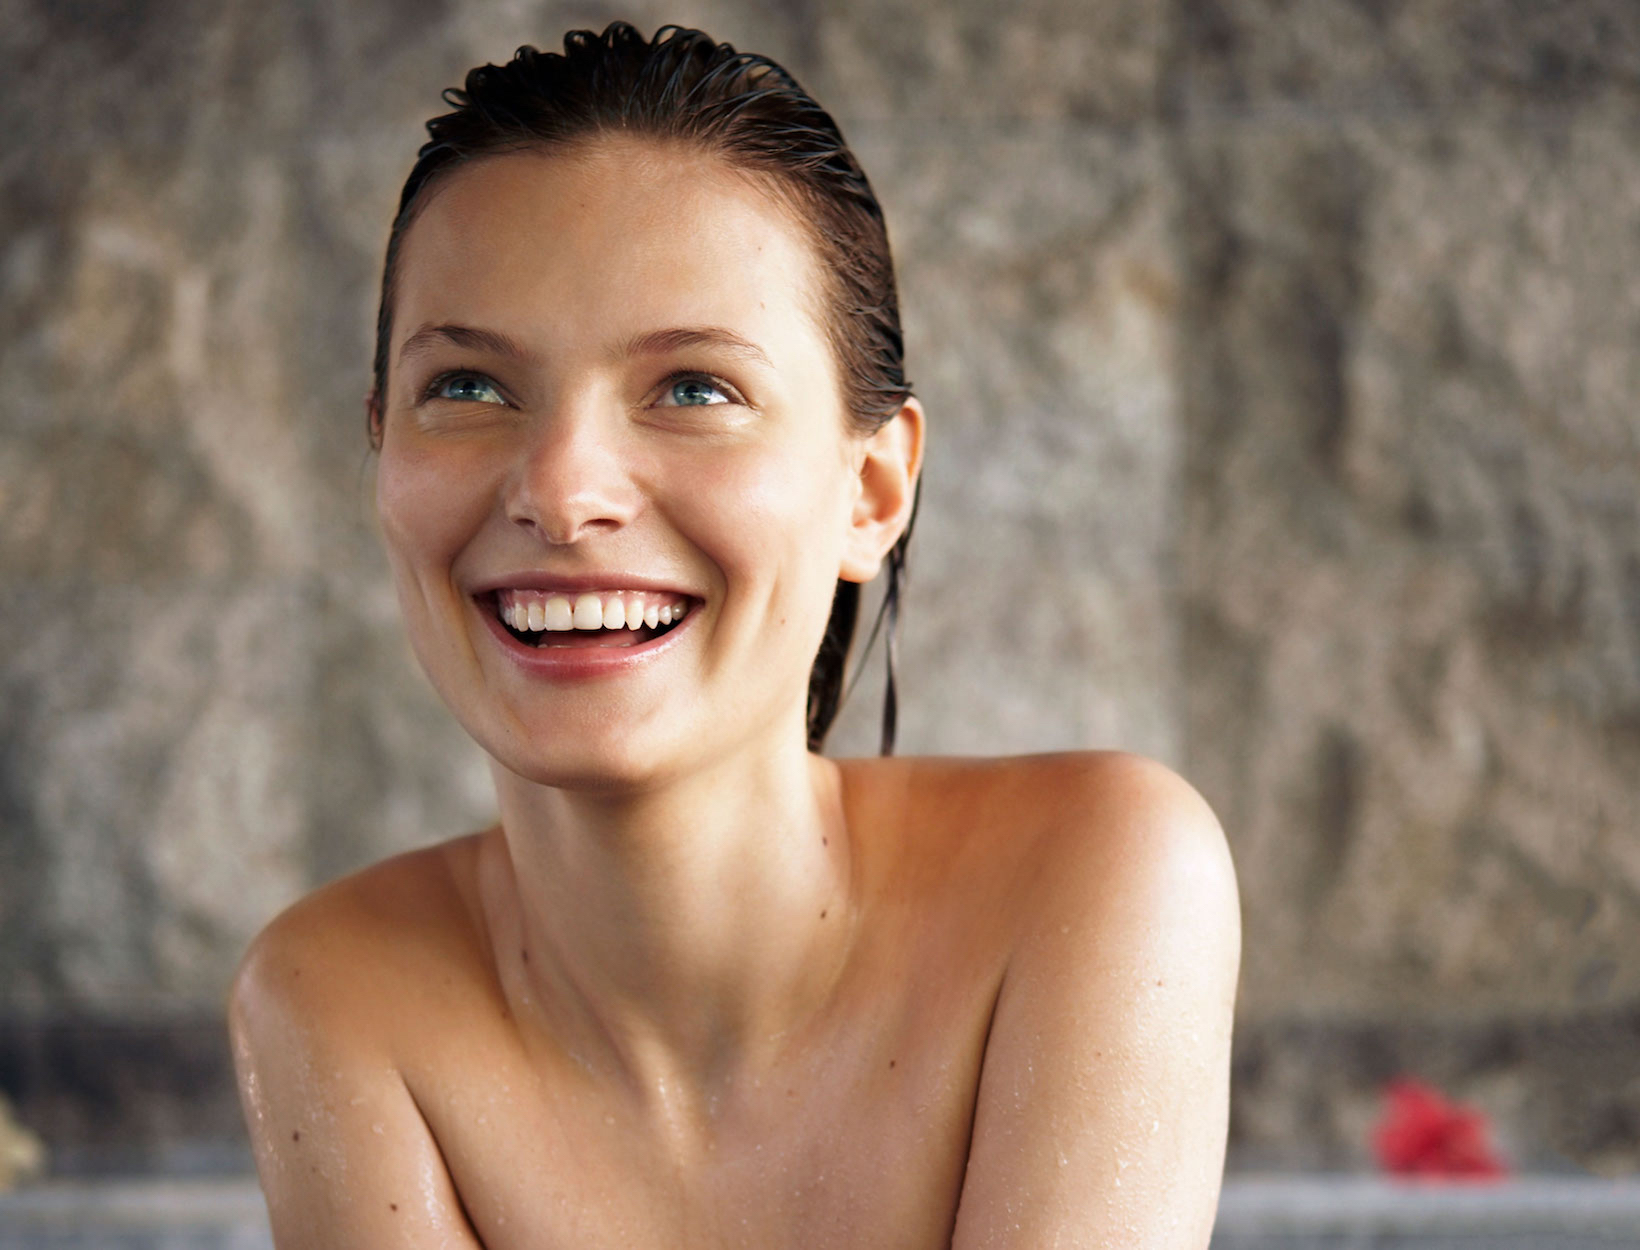 7 Beauty Essentials for a Spring Getaway